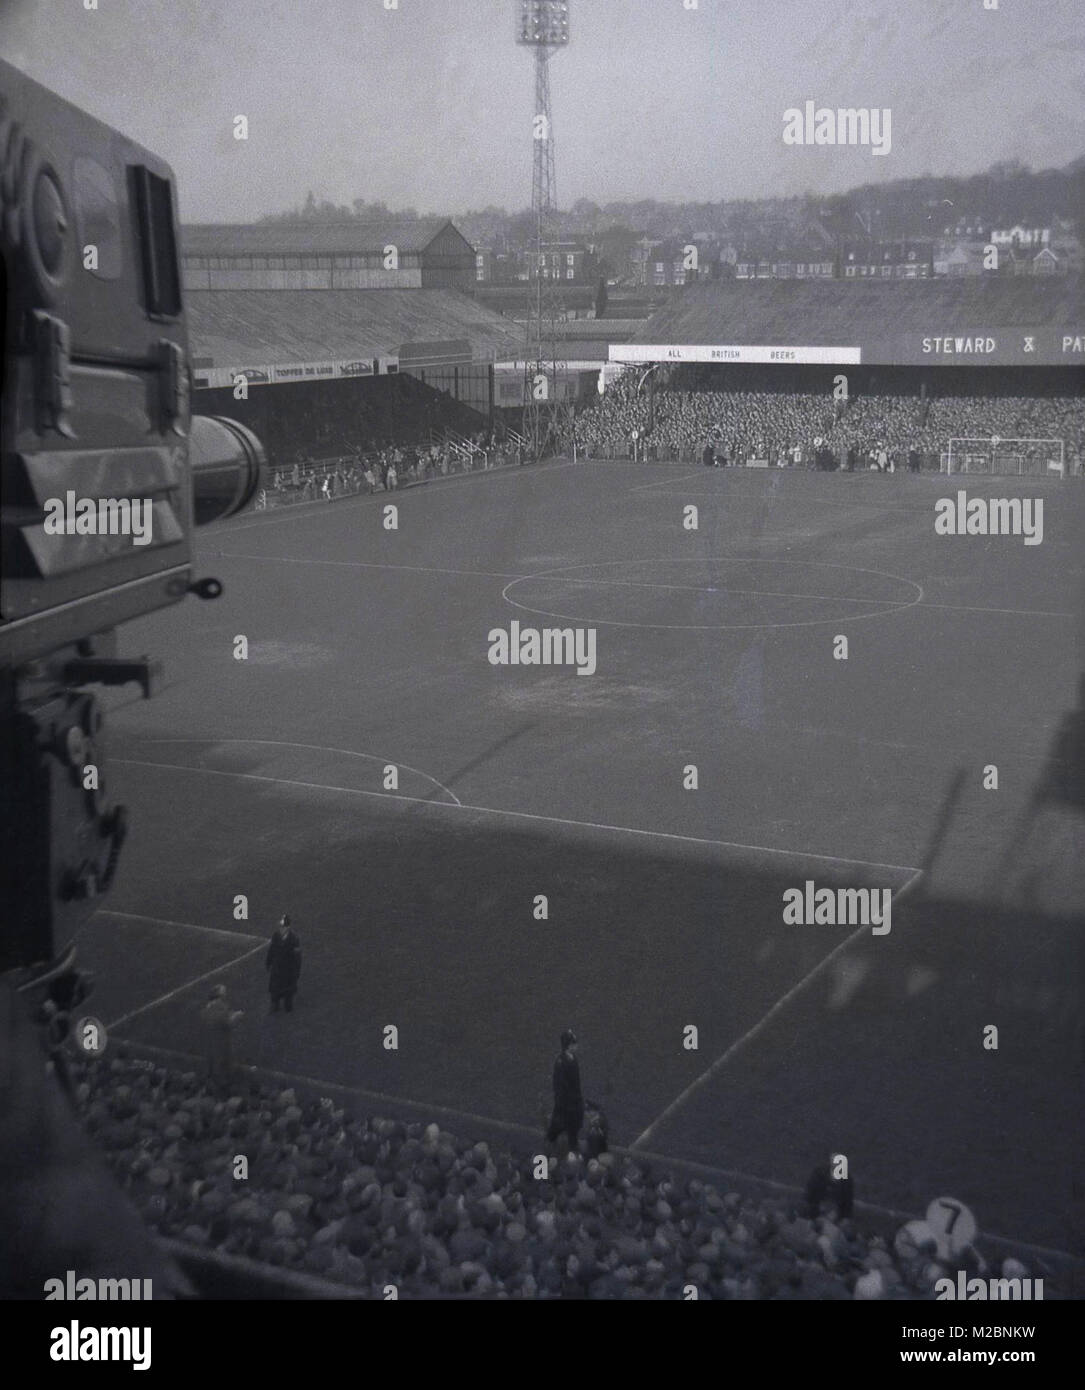 1960s, historical, overhead picture showing the football pitch and stands of Norwich FC at this time, taken from - Stock Image